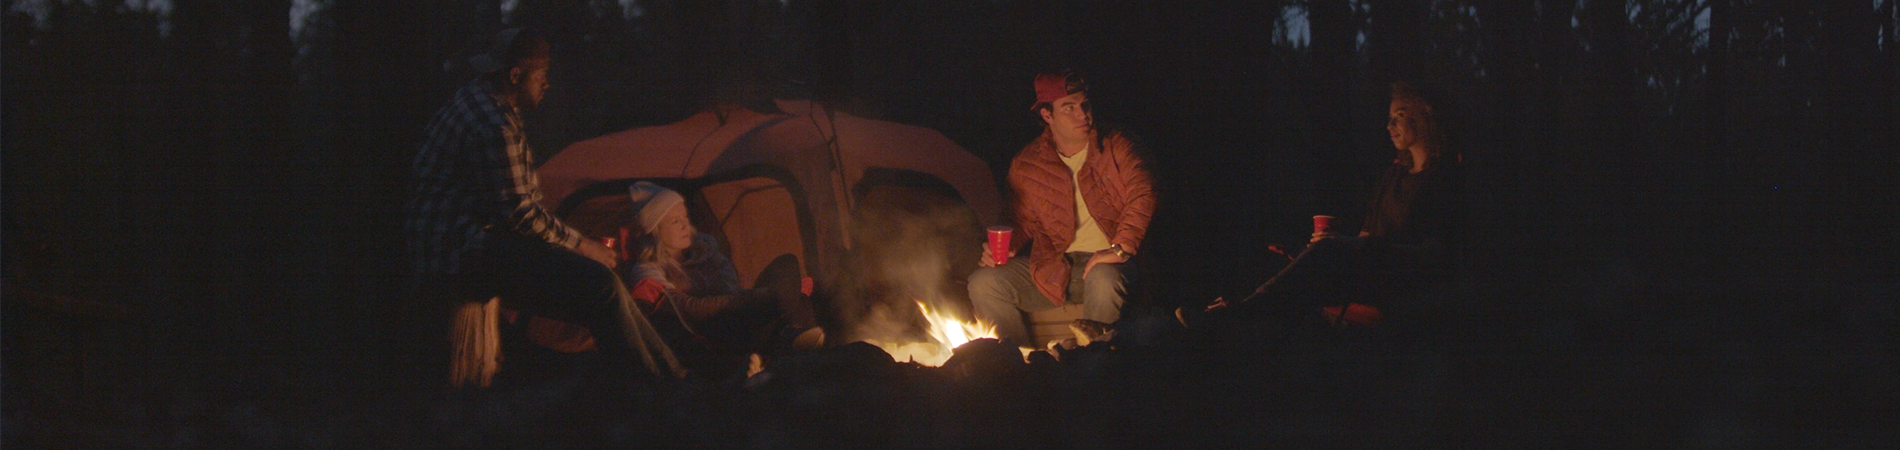 Friends sitting around a campfire together